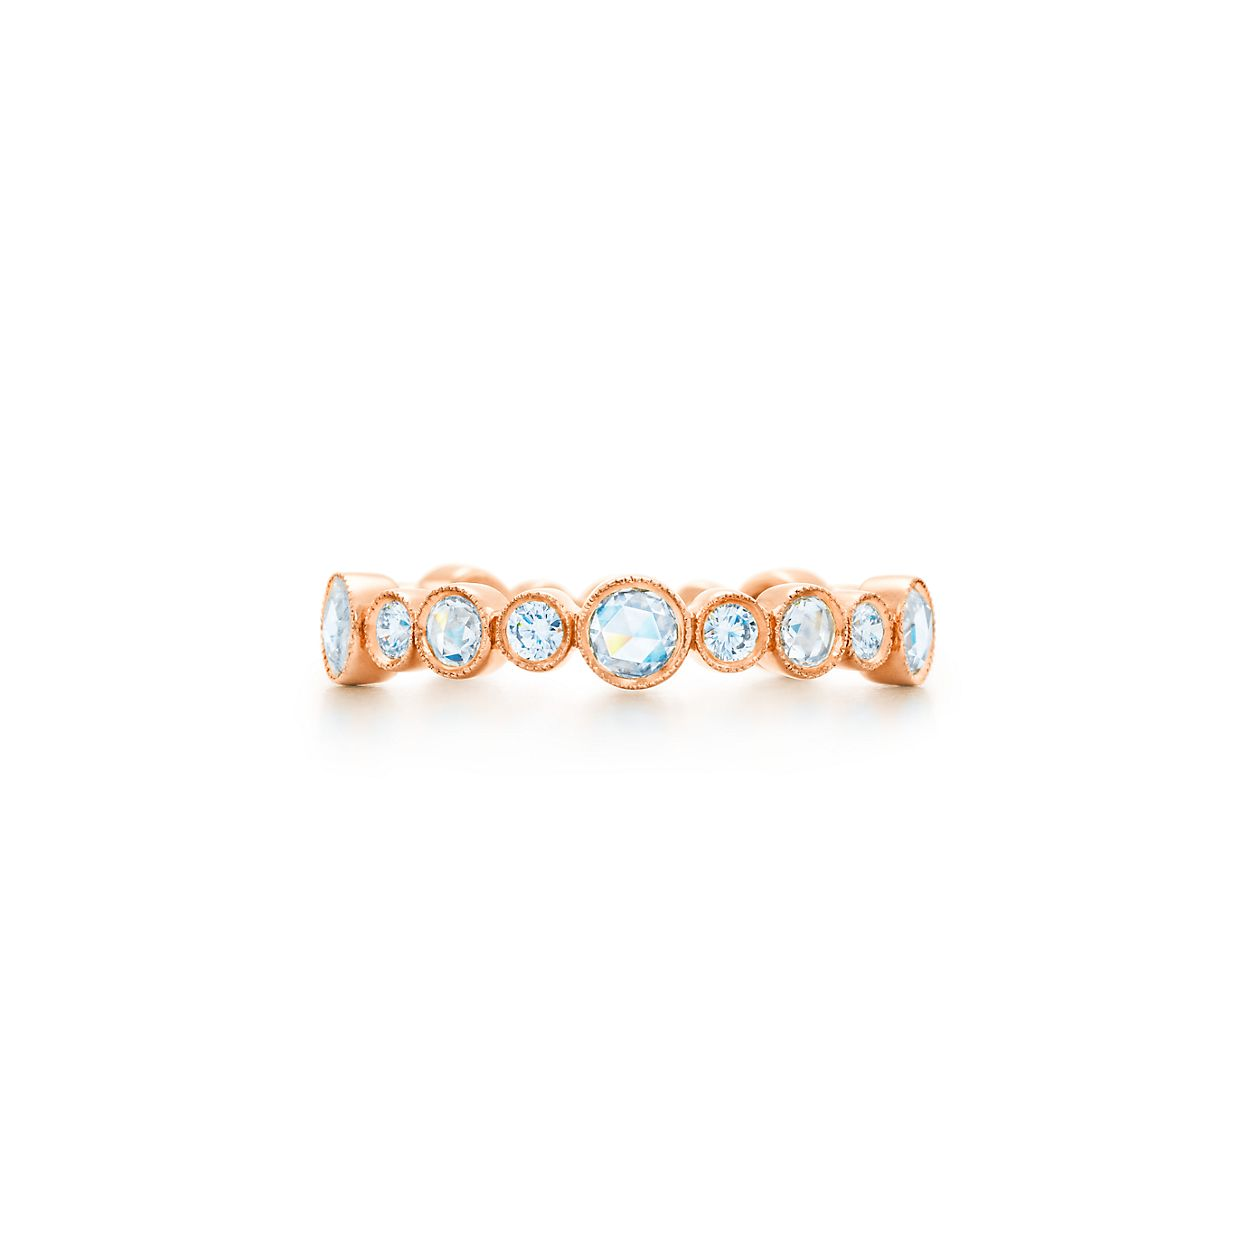 z ring rings band diamond bands rose gold chain